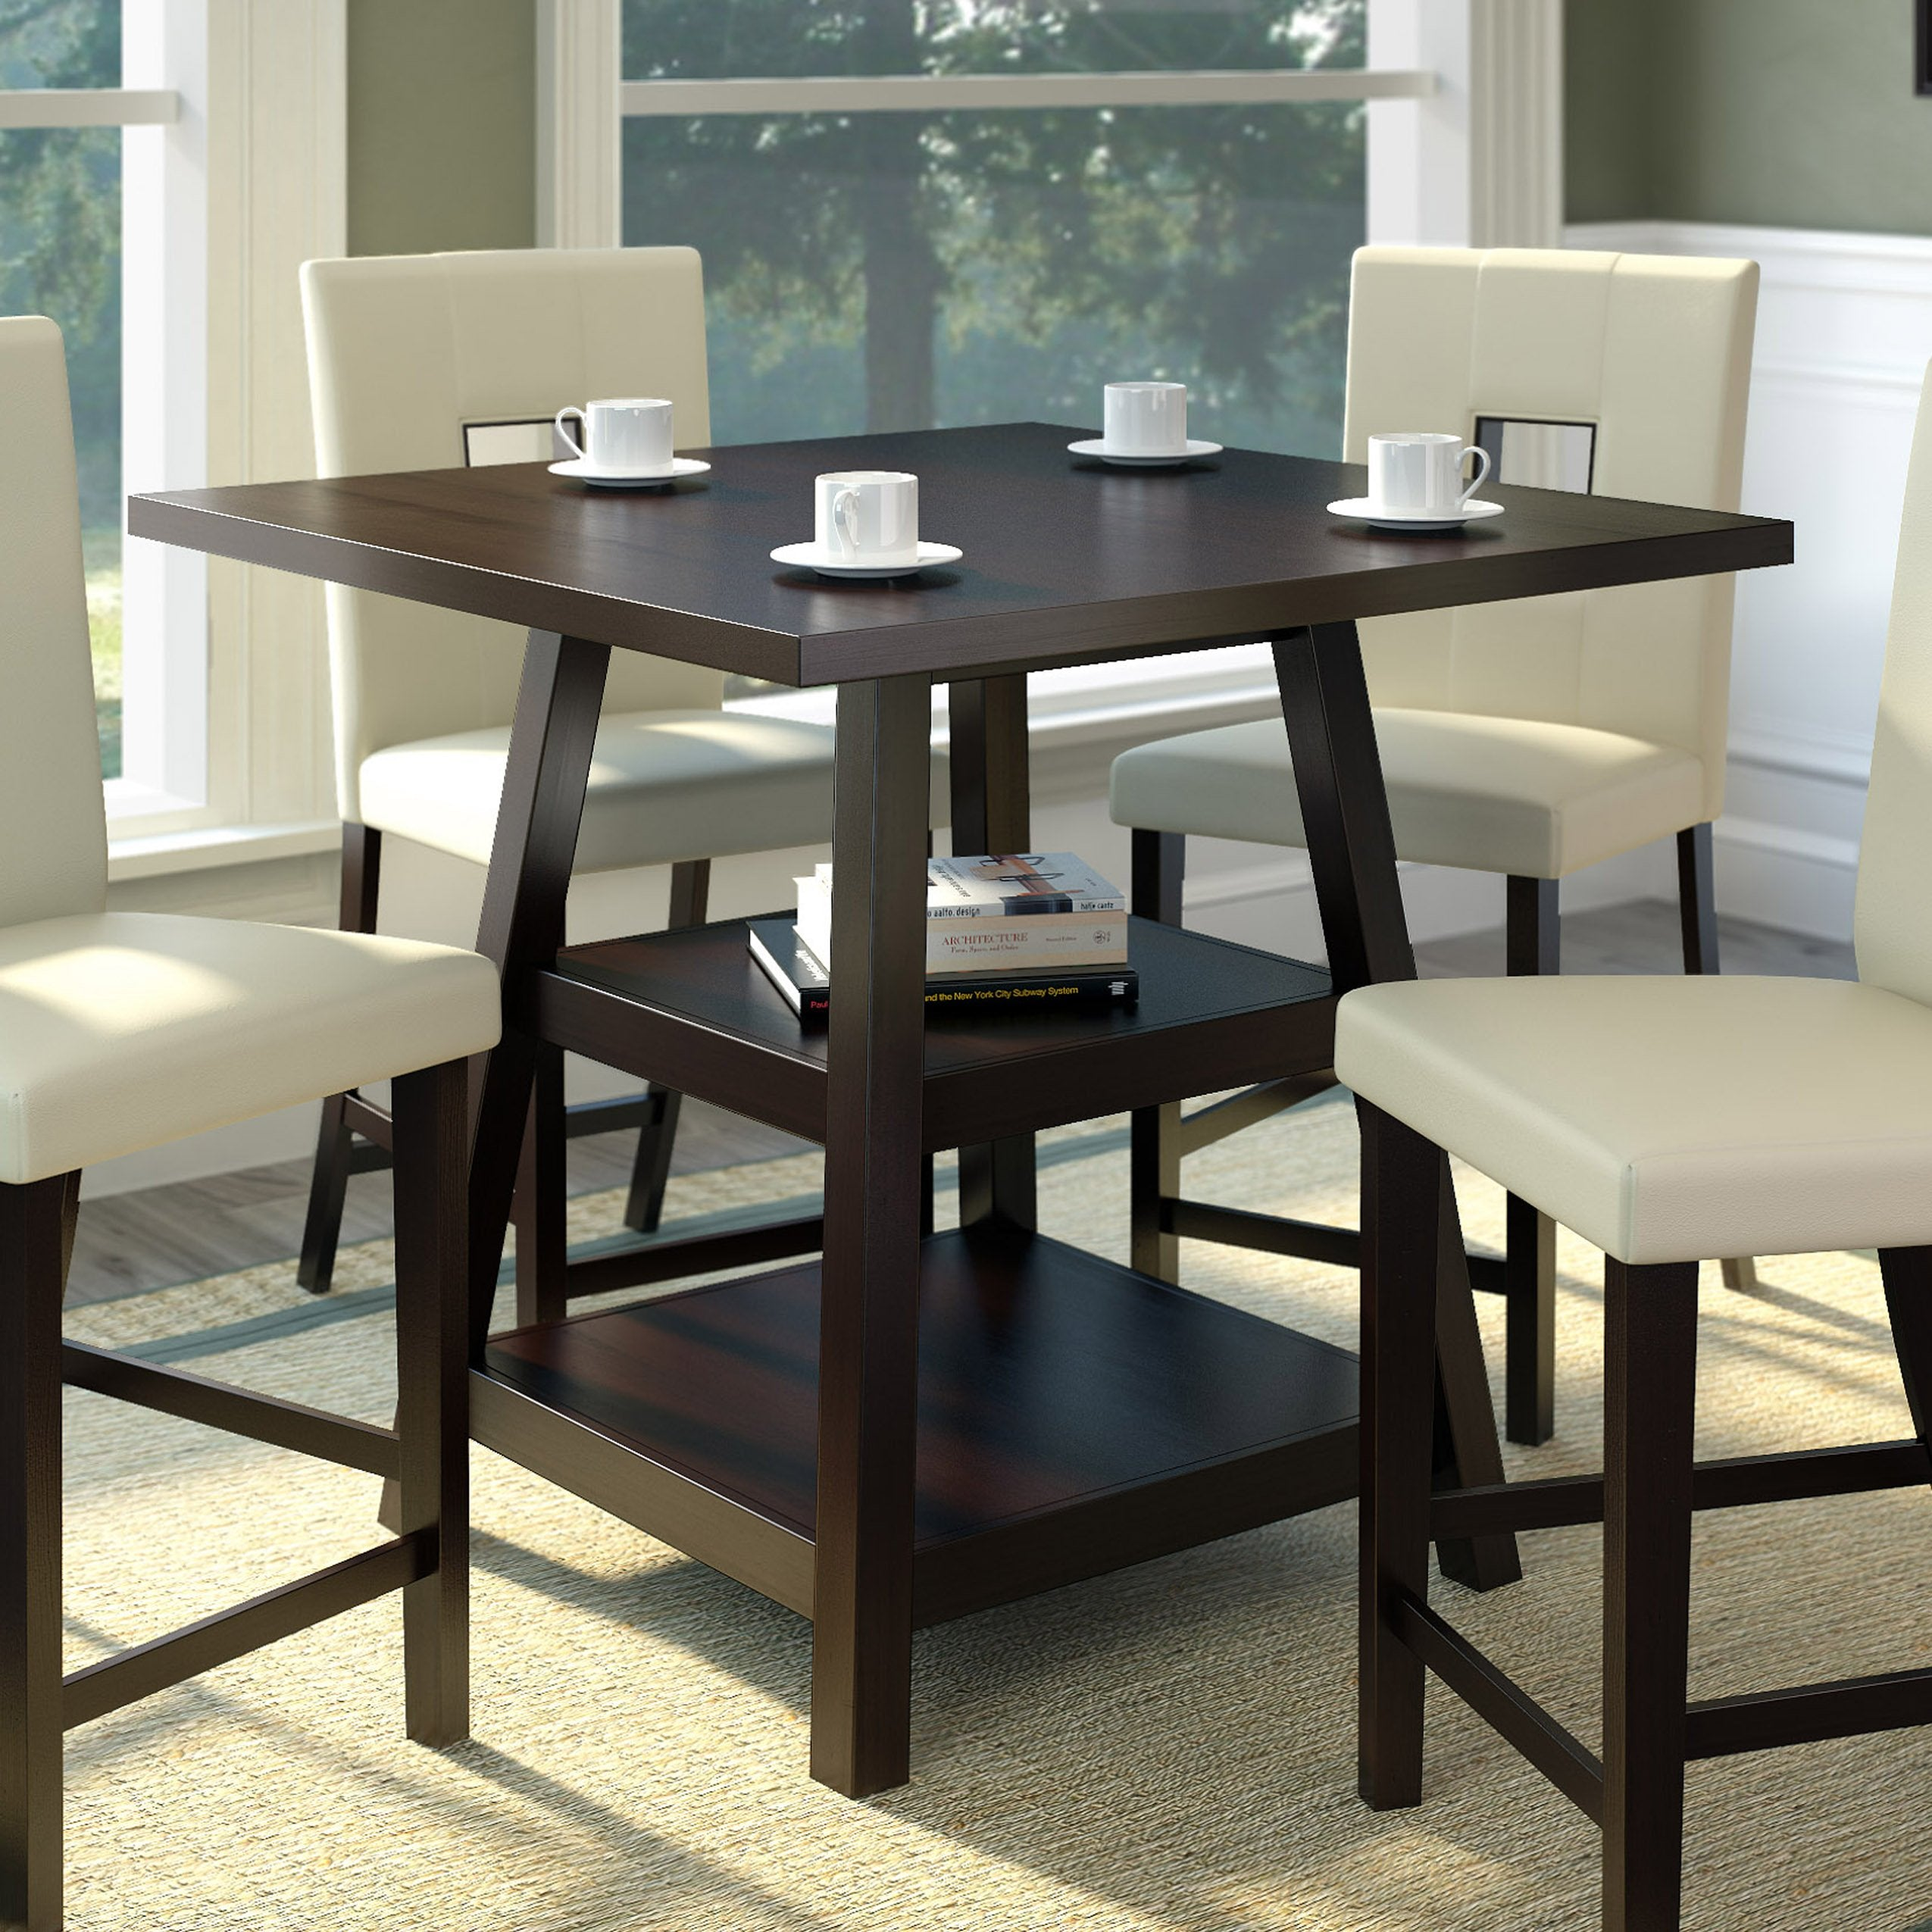 Cappuccino 36 Counter Height Dining Table With Shelves Corliving